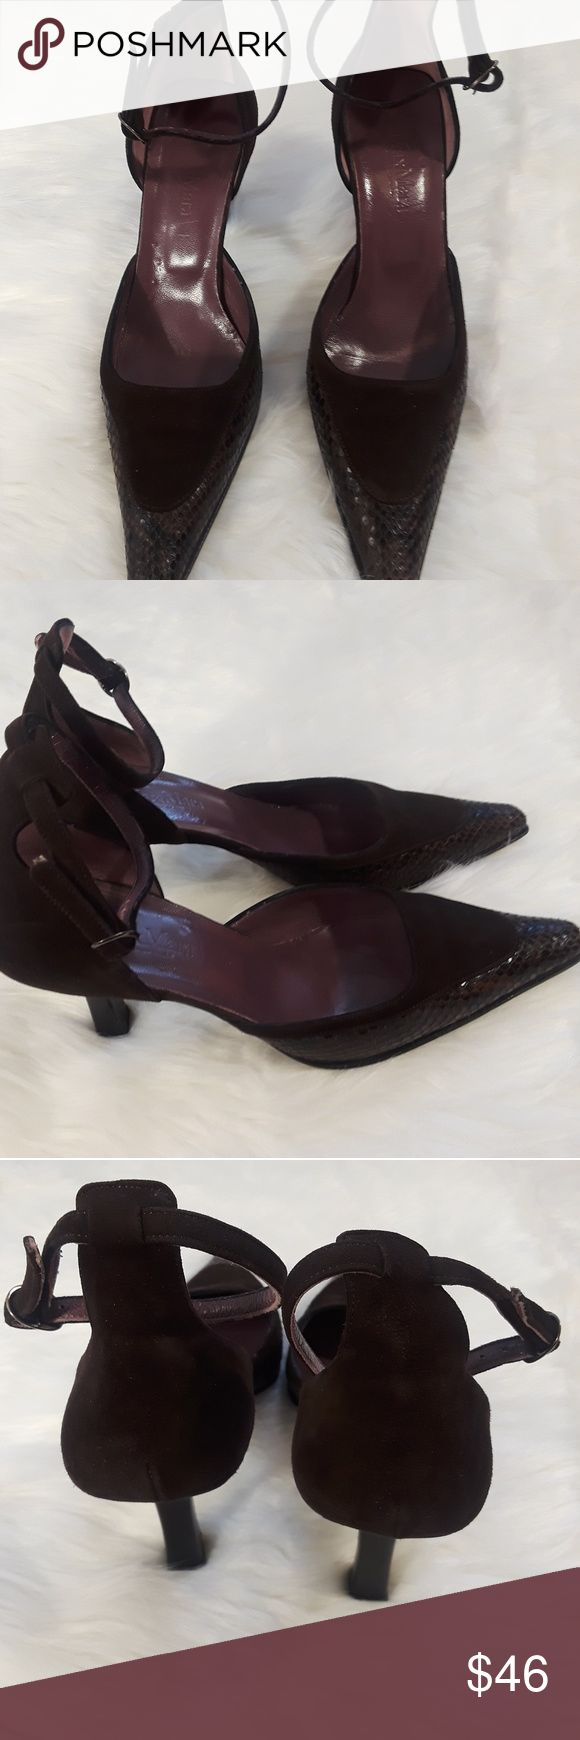 Max Mara women's pointed heels brown suede size 9 Max Mara women's size 39 9 brown ankle strap pumps  snake skin pointed toe leather suede excellent condition gently worn MaxMara Shoes Heels